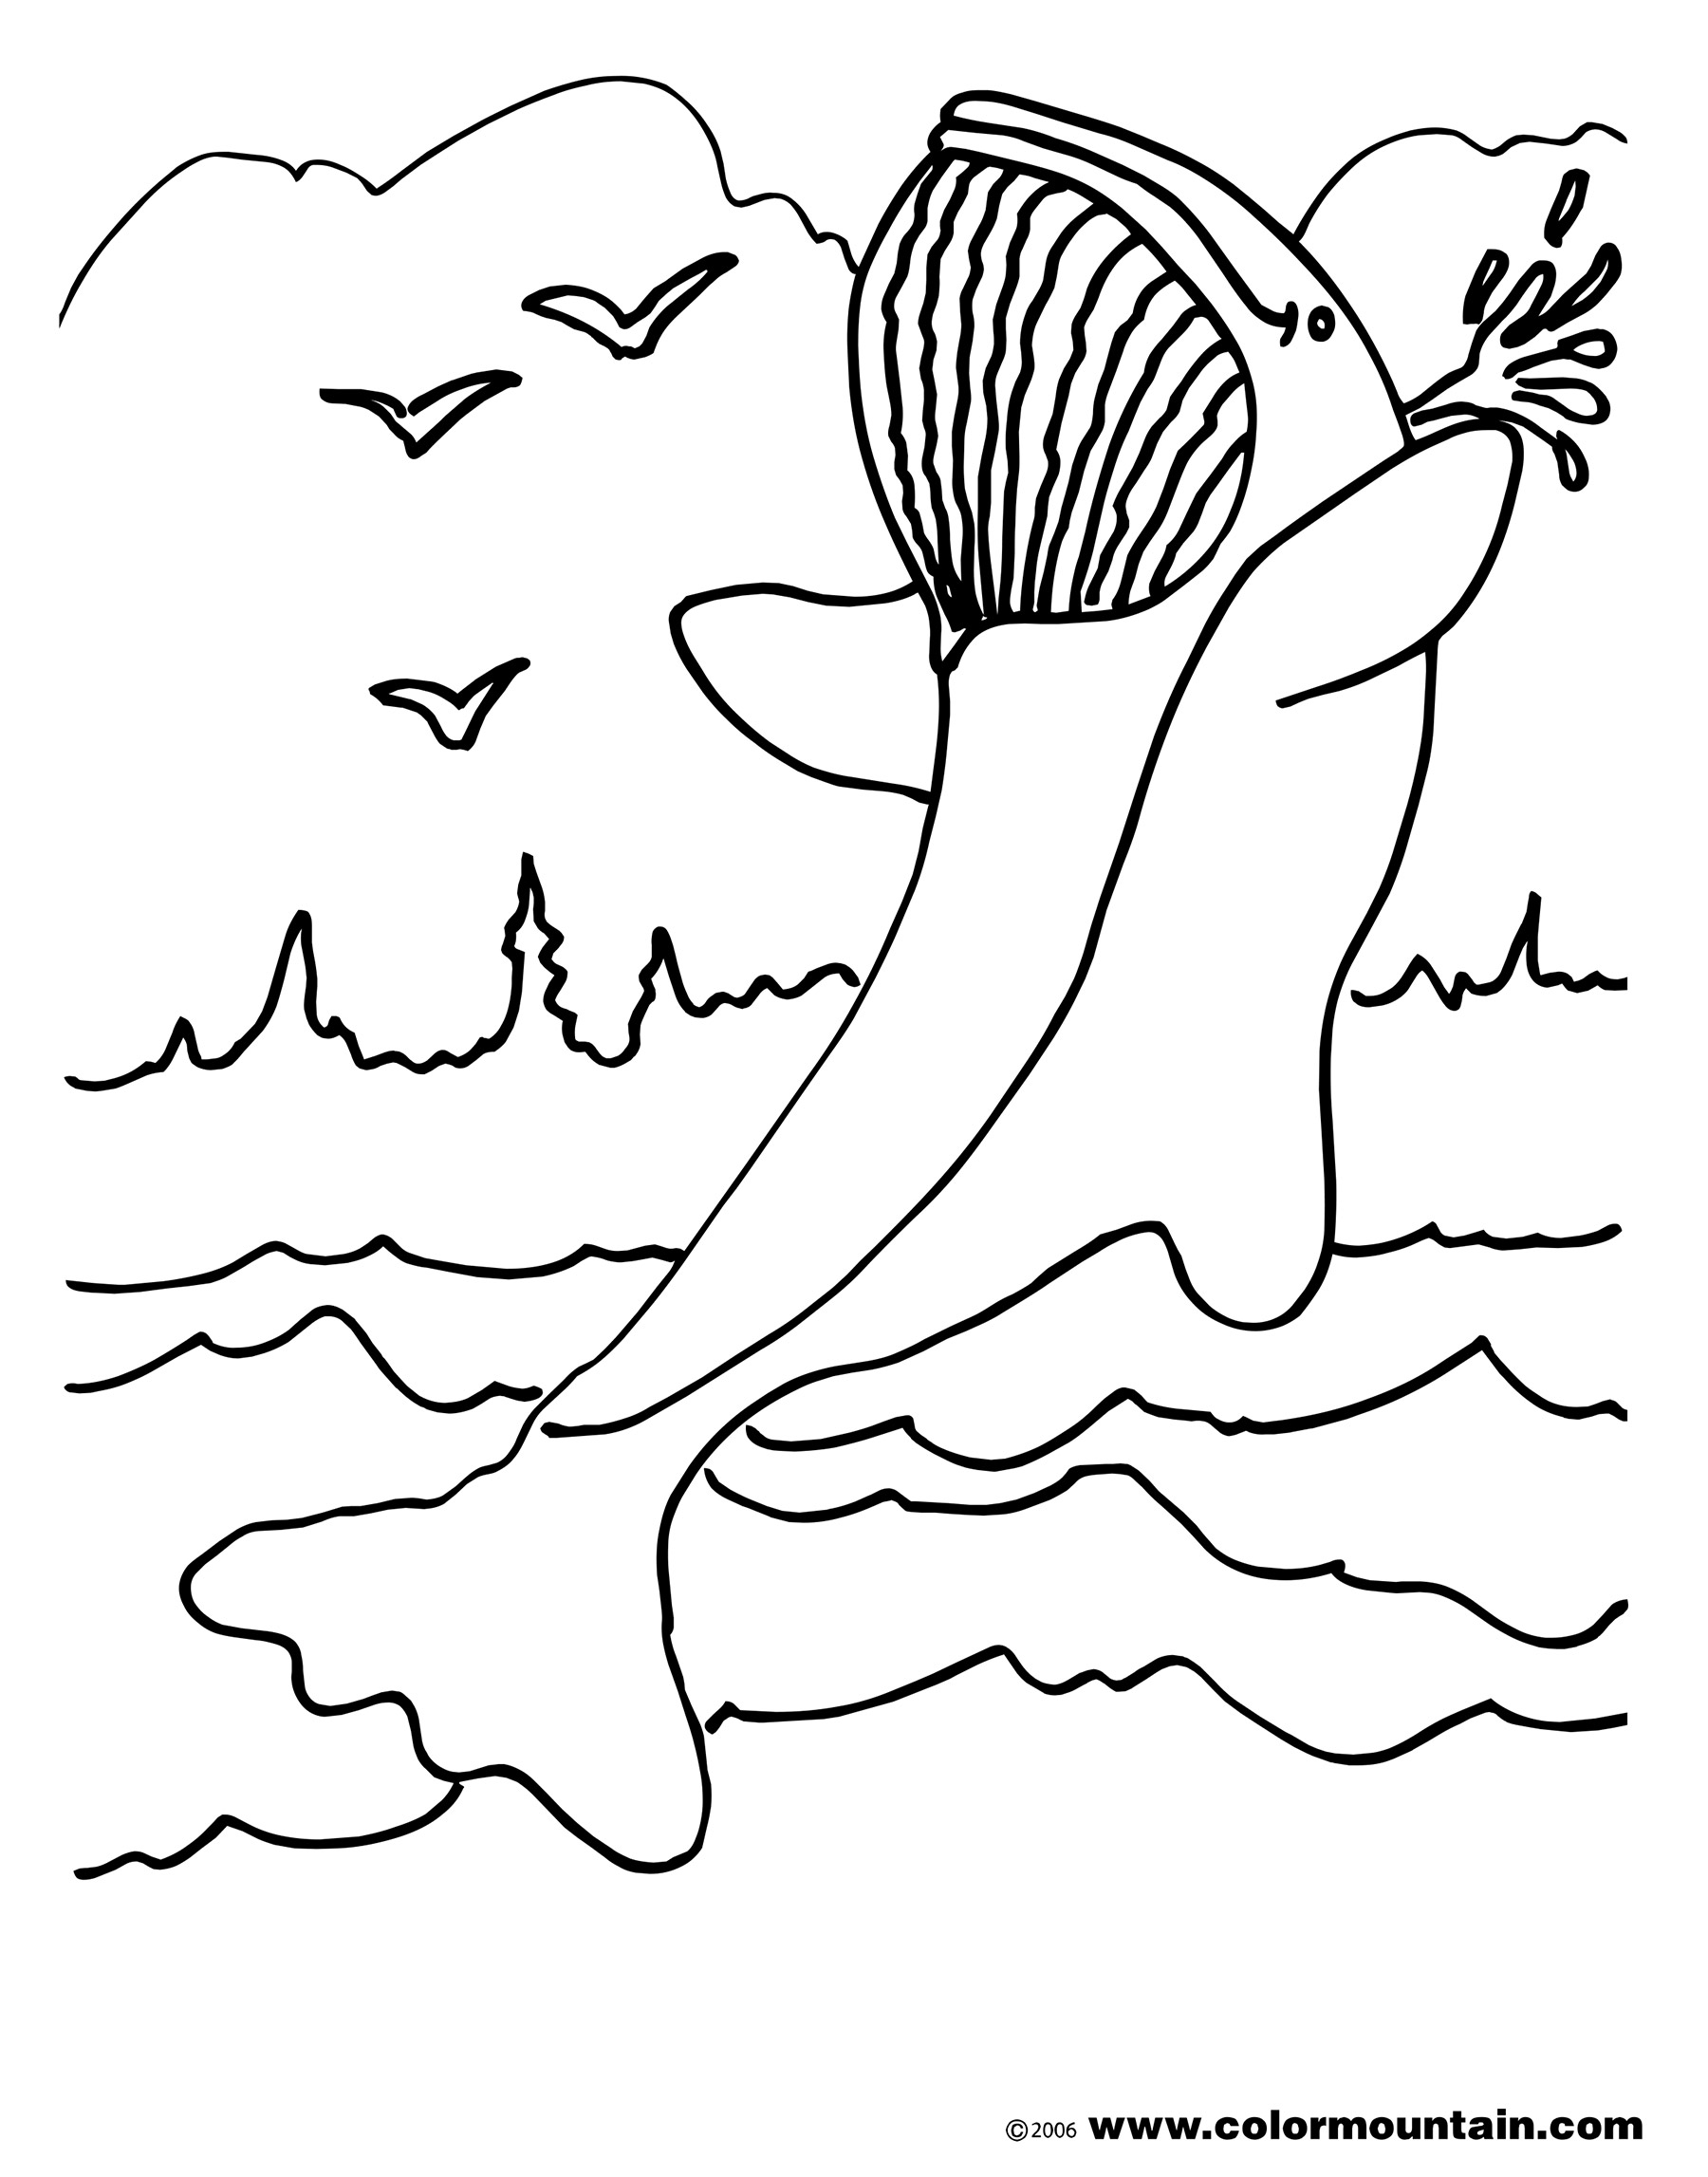 blue whale coloring page blue whale mating coloring page kids play color whale blue page coloring